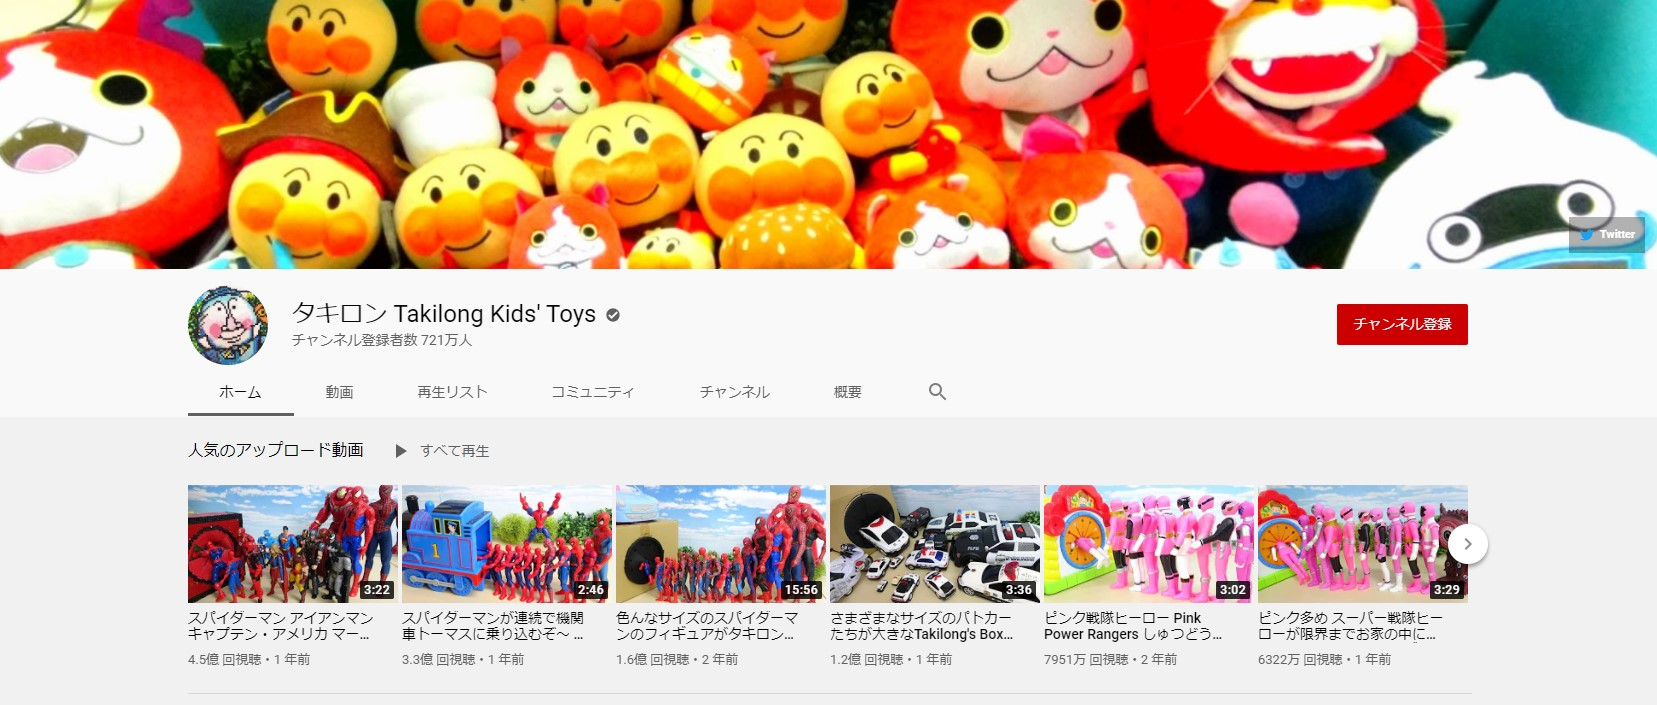 タキロン Takilong Kids' Toys